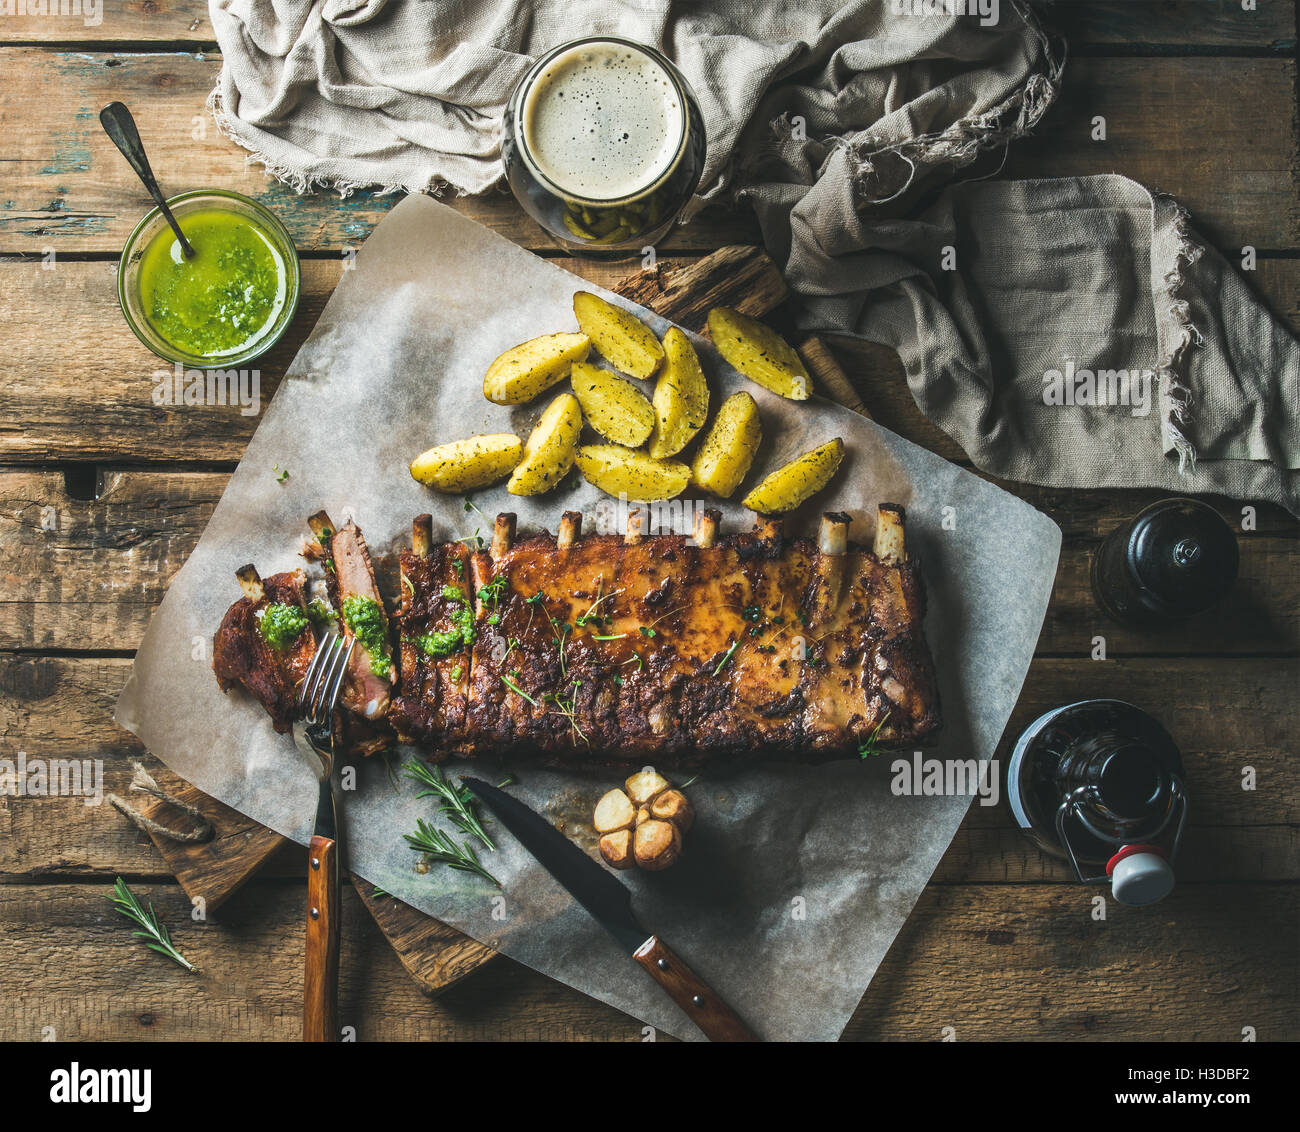 Roasted pork ribs with sauce, fried potato and dark beer - Stock Image